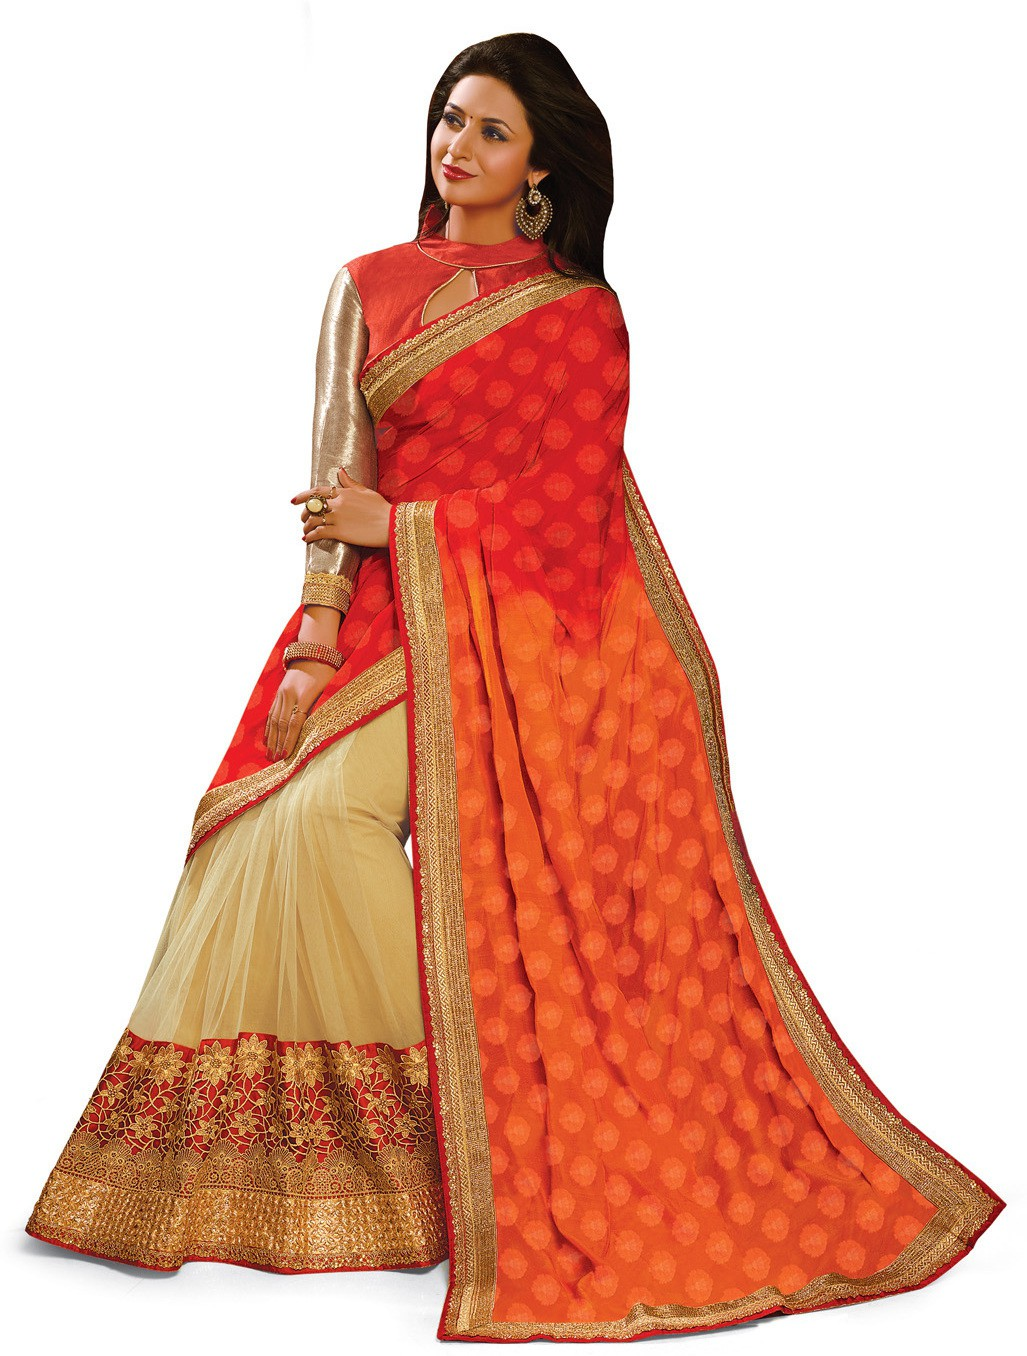 Indianbeauty Self Design, Embroidered Bollywood Jacquard, Net, Pure Georgette Saree(Orange, Red, Beige)